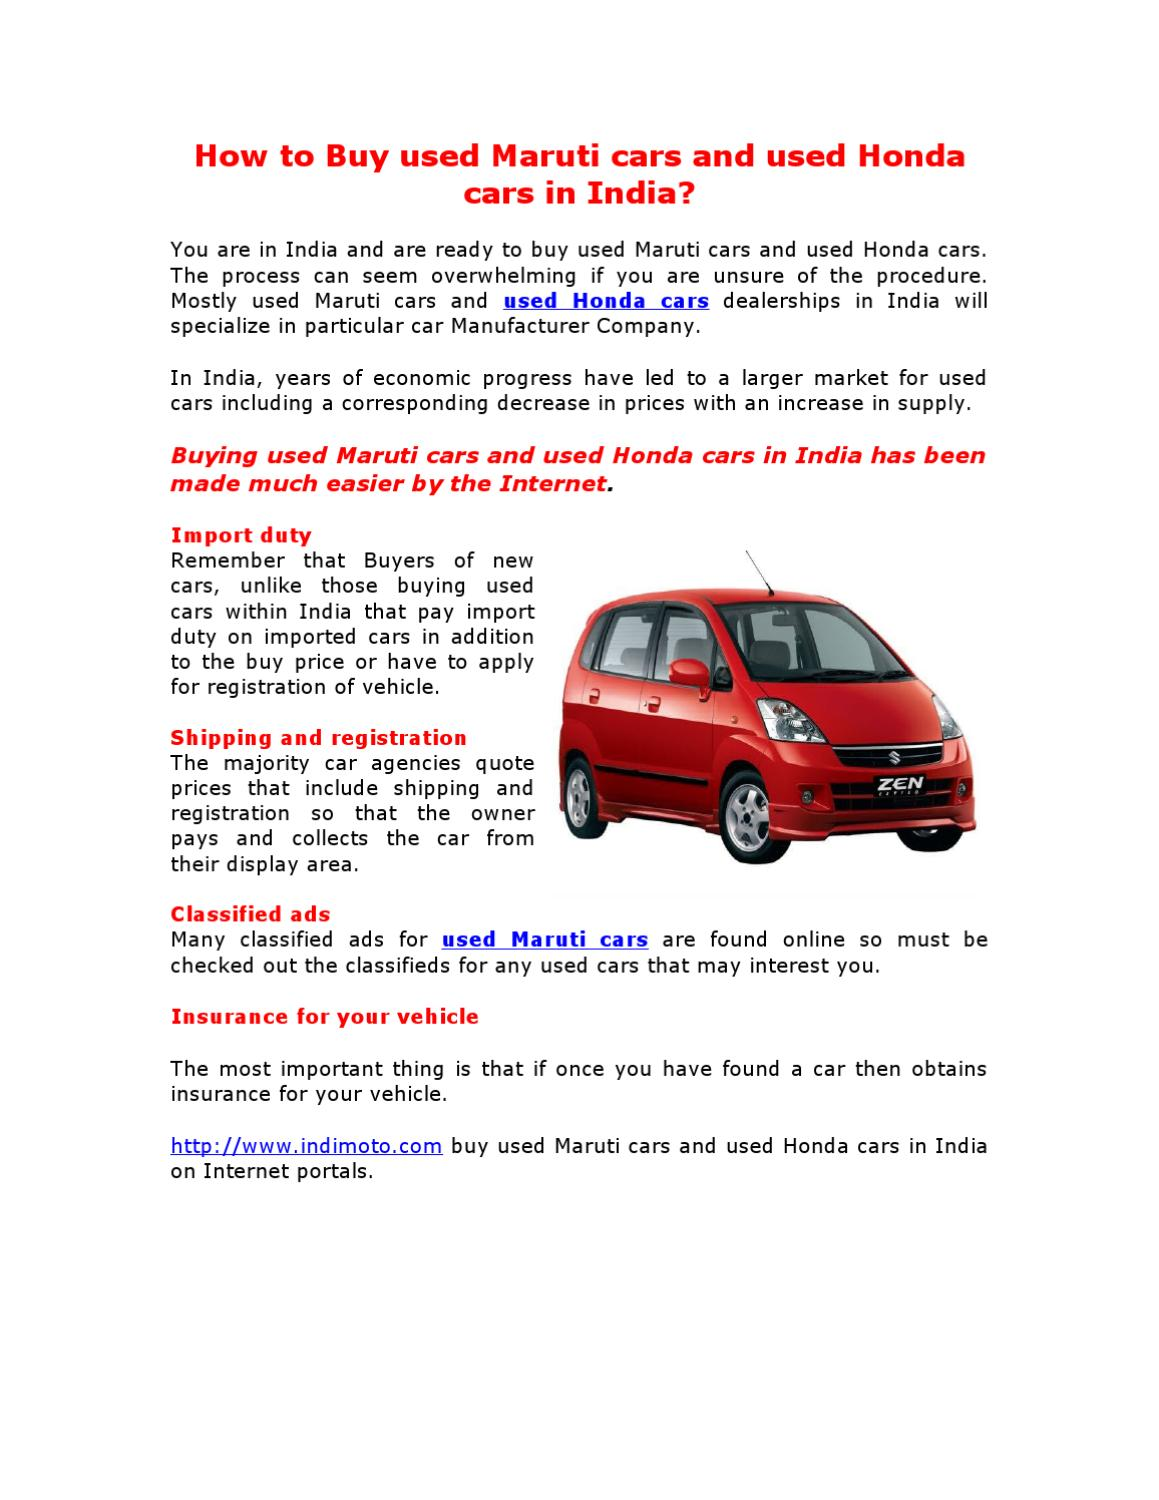 How to Buy used Maruti cars and used Honda cars in India? by ...